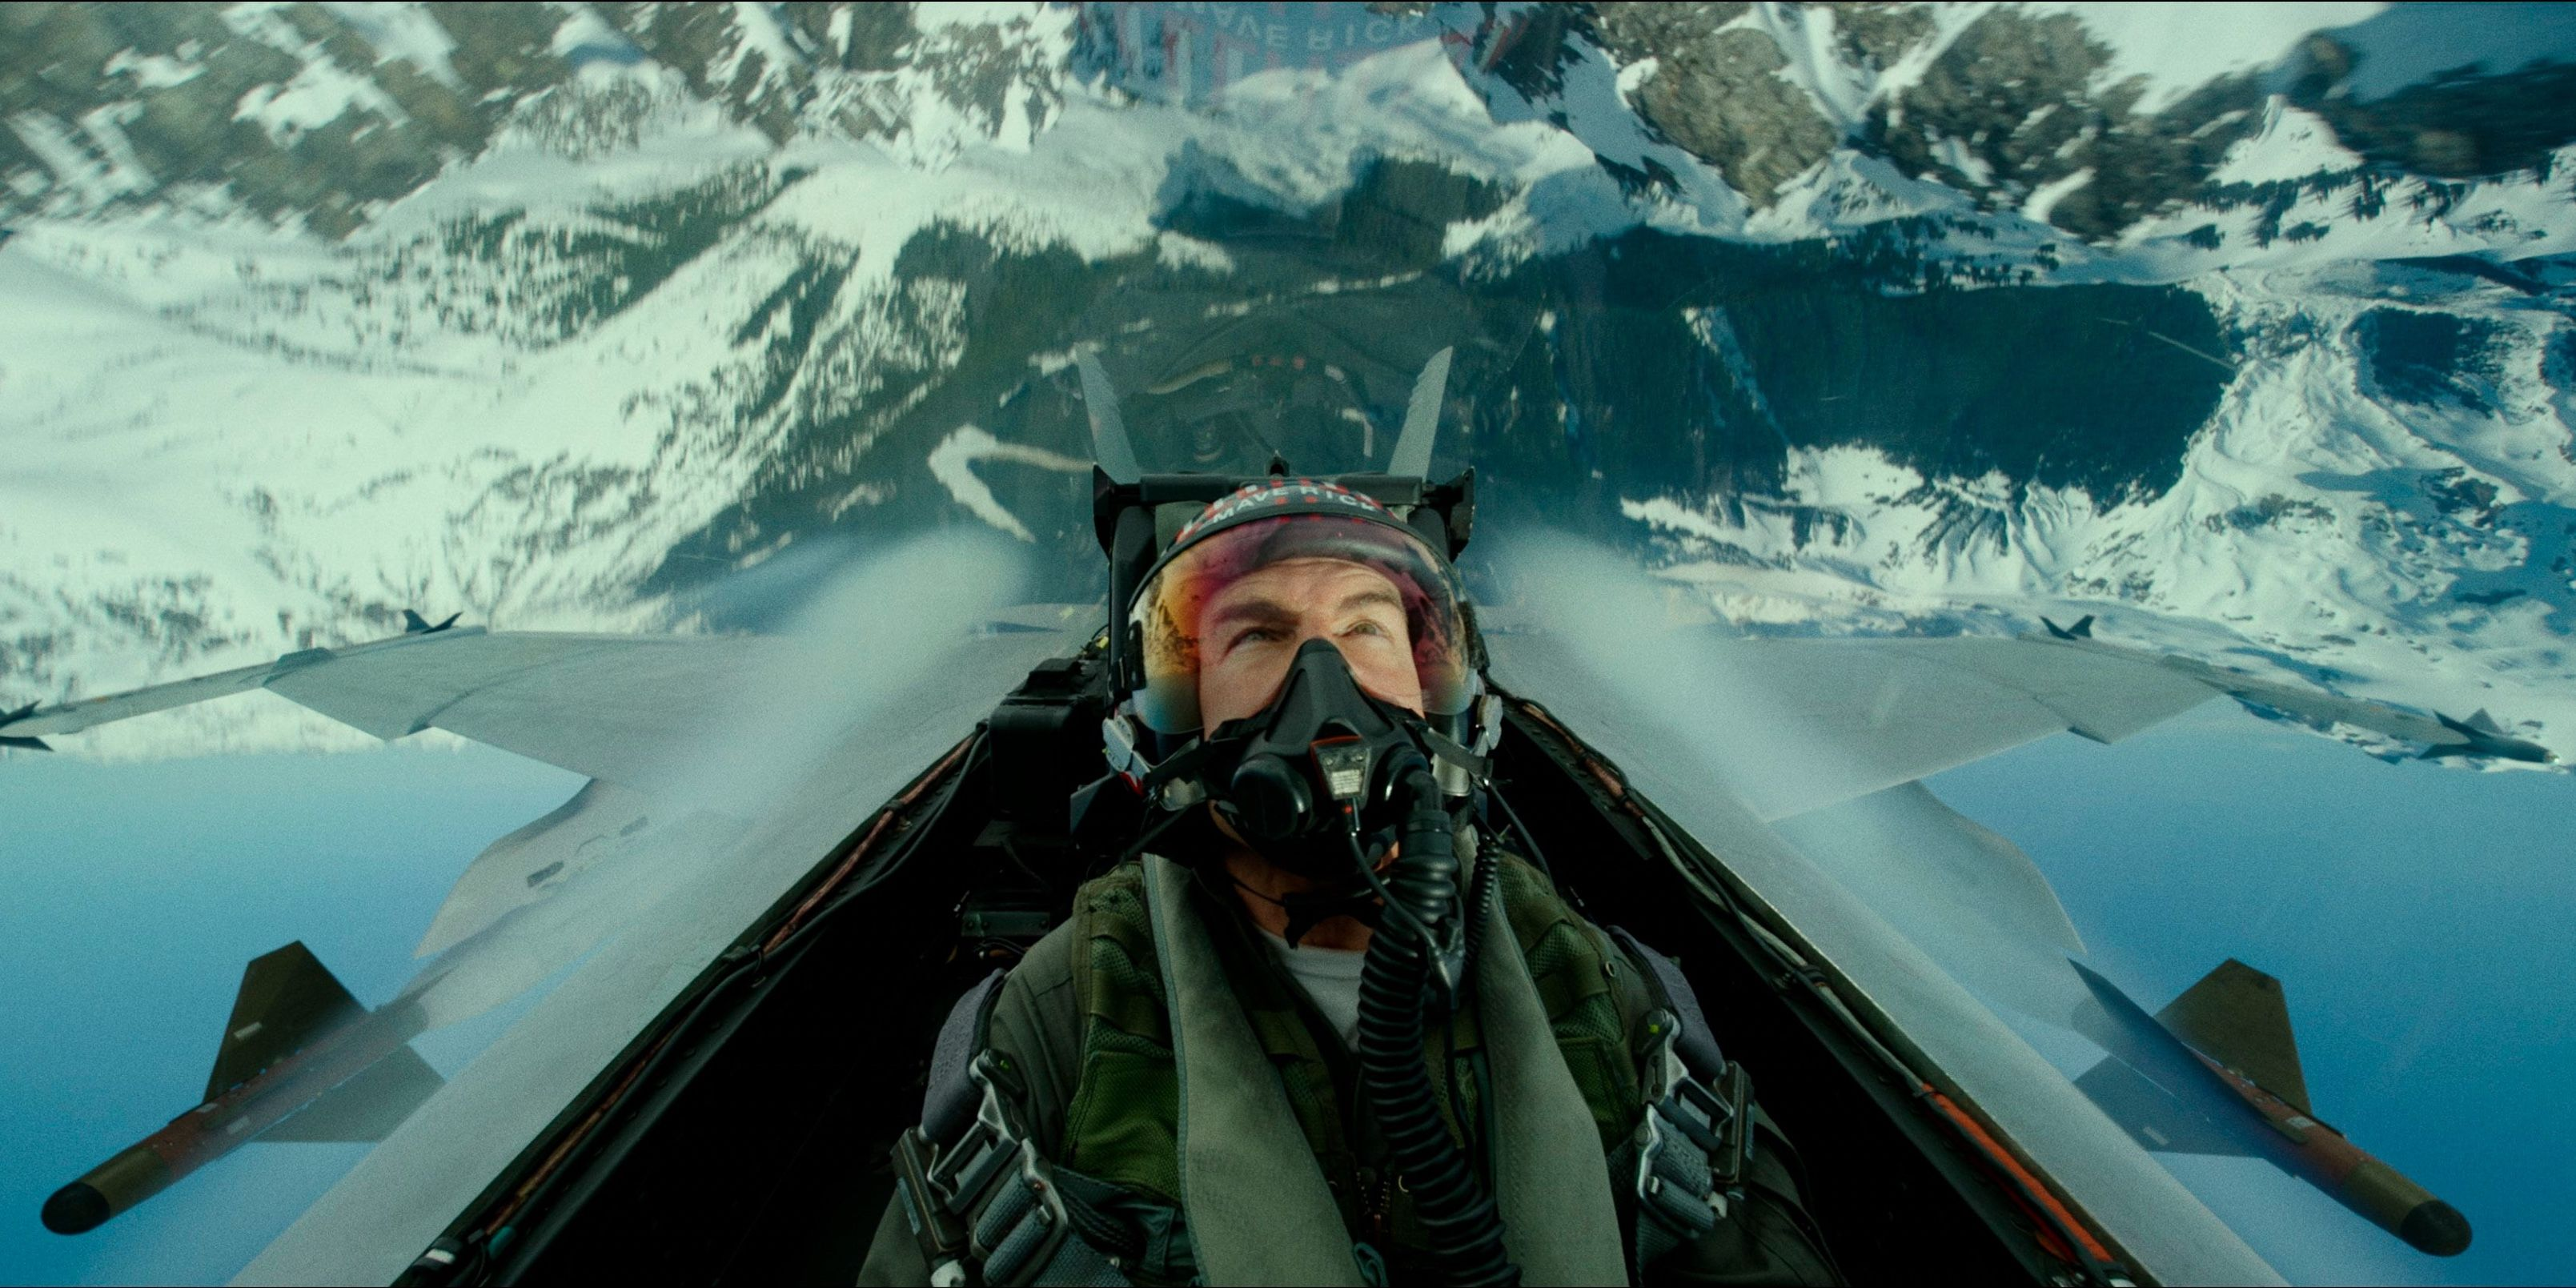 Tom Cruise's Mission: Impossible 7 And Top Gun 2 Hit With More Delays